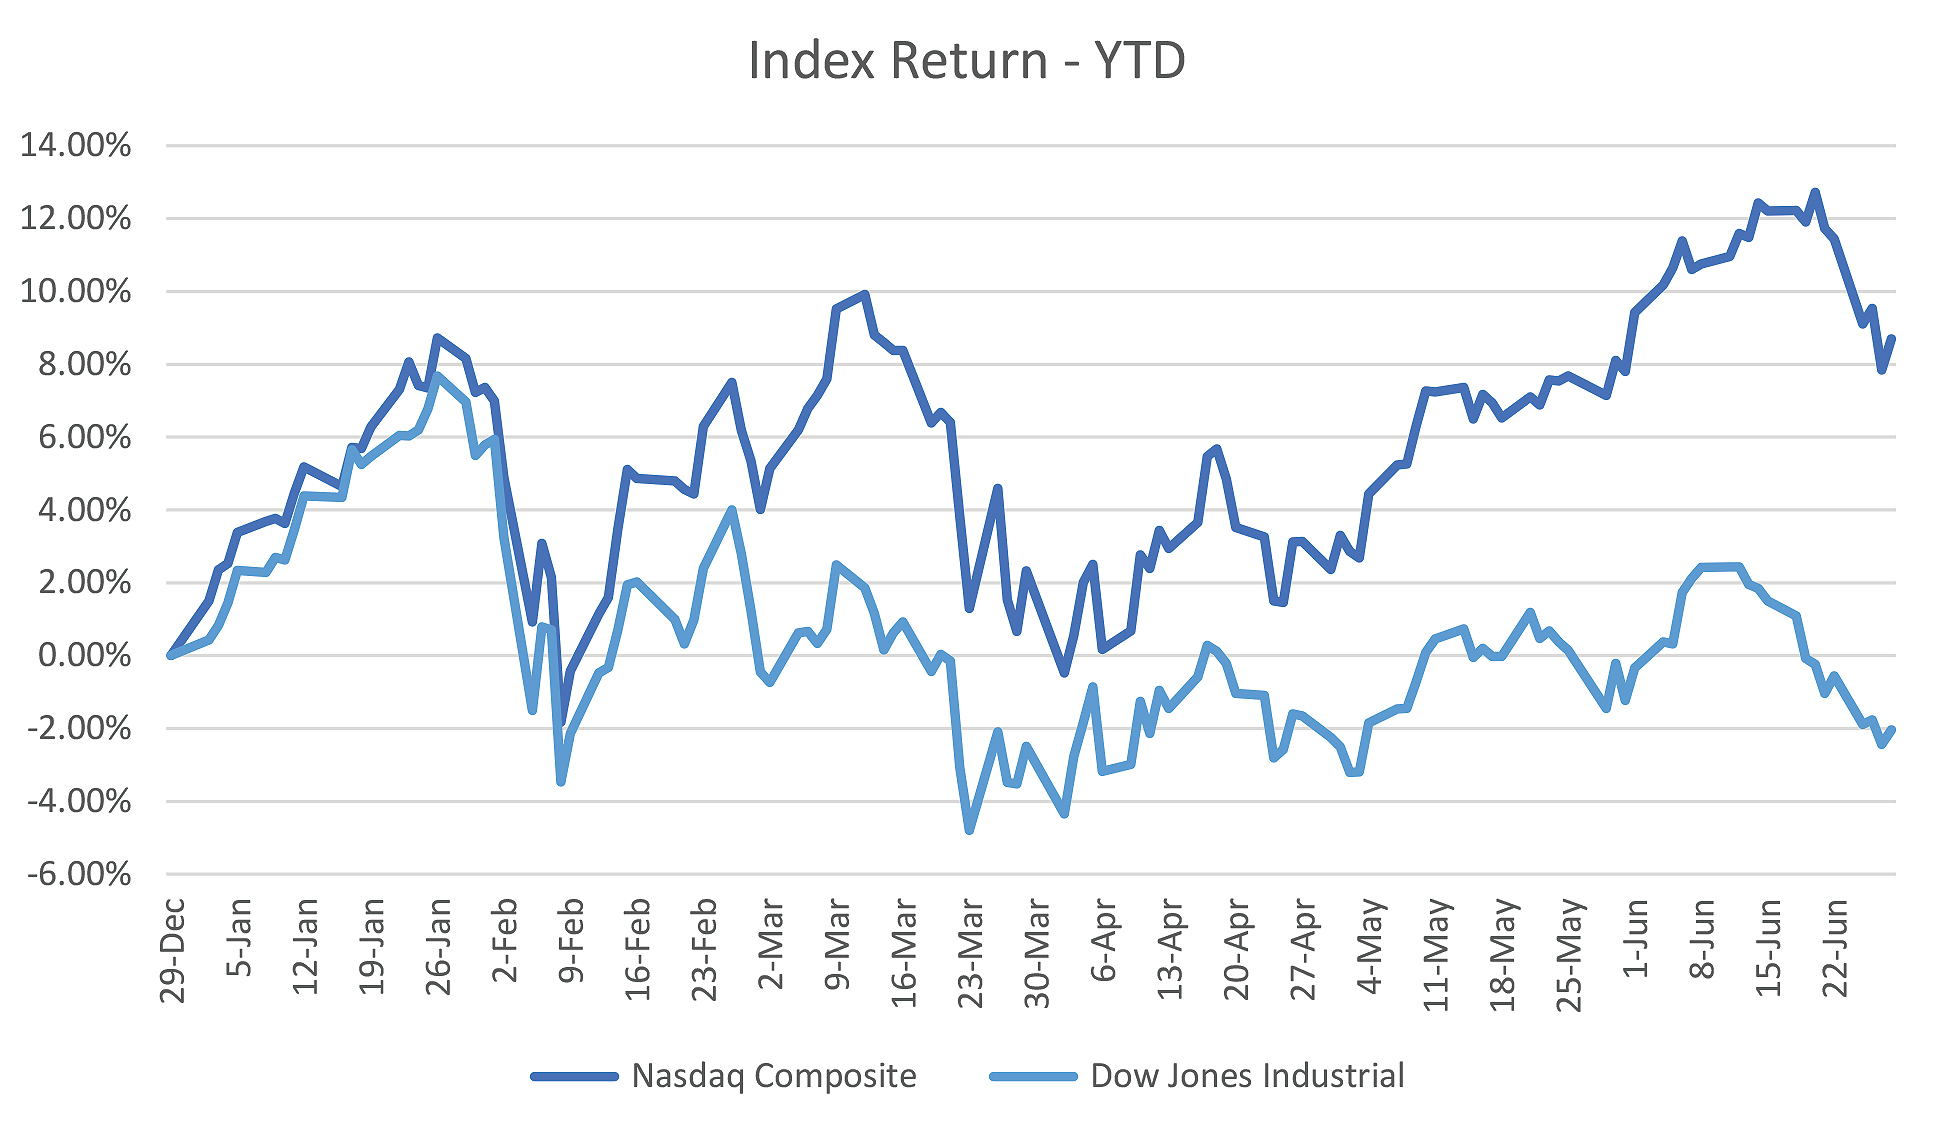 Index Return - Year to Date